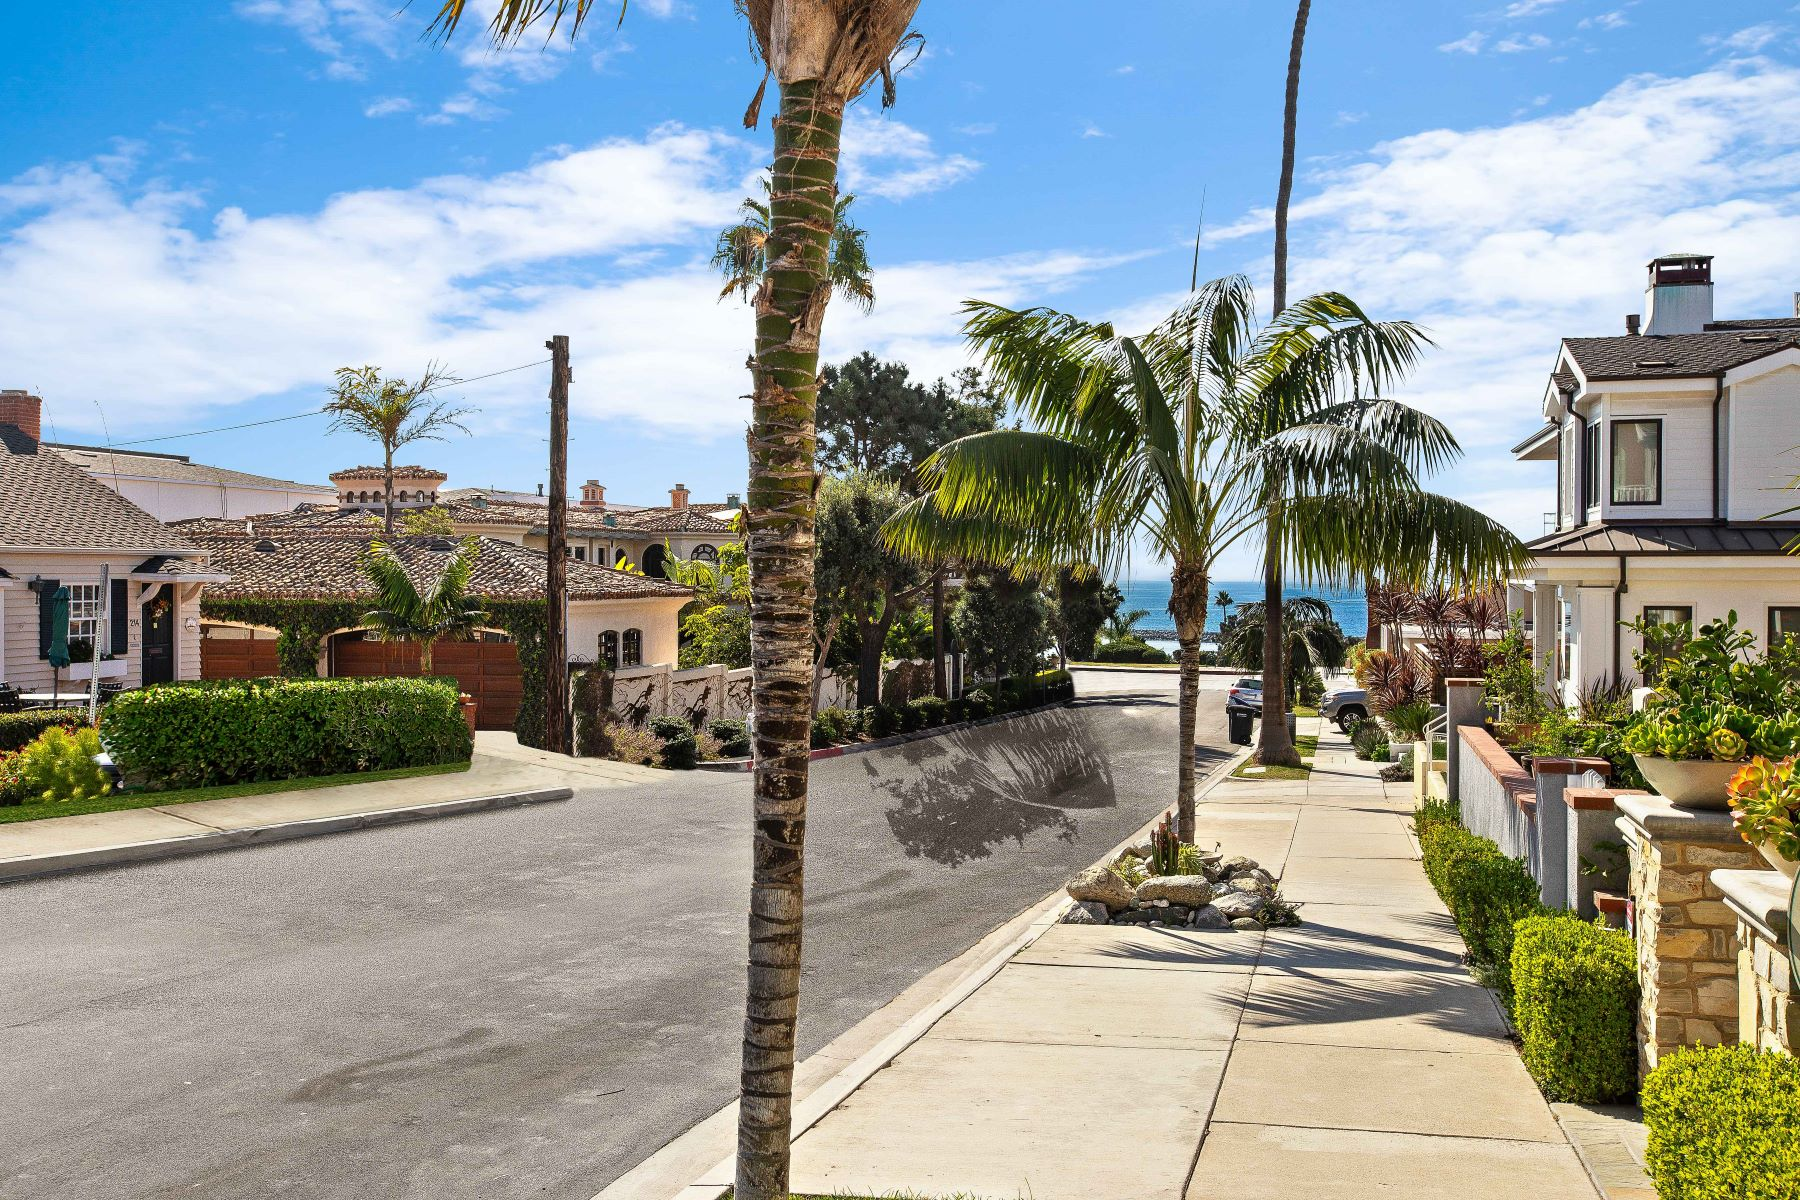 Single Family Homes for Sale at 223 Heliotrope Ave Corona Del Mar, California 92625 United States